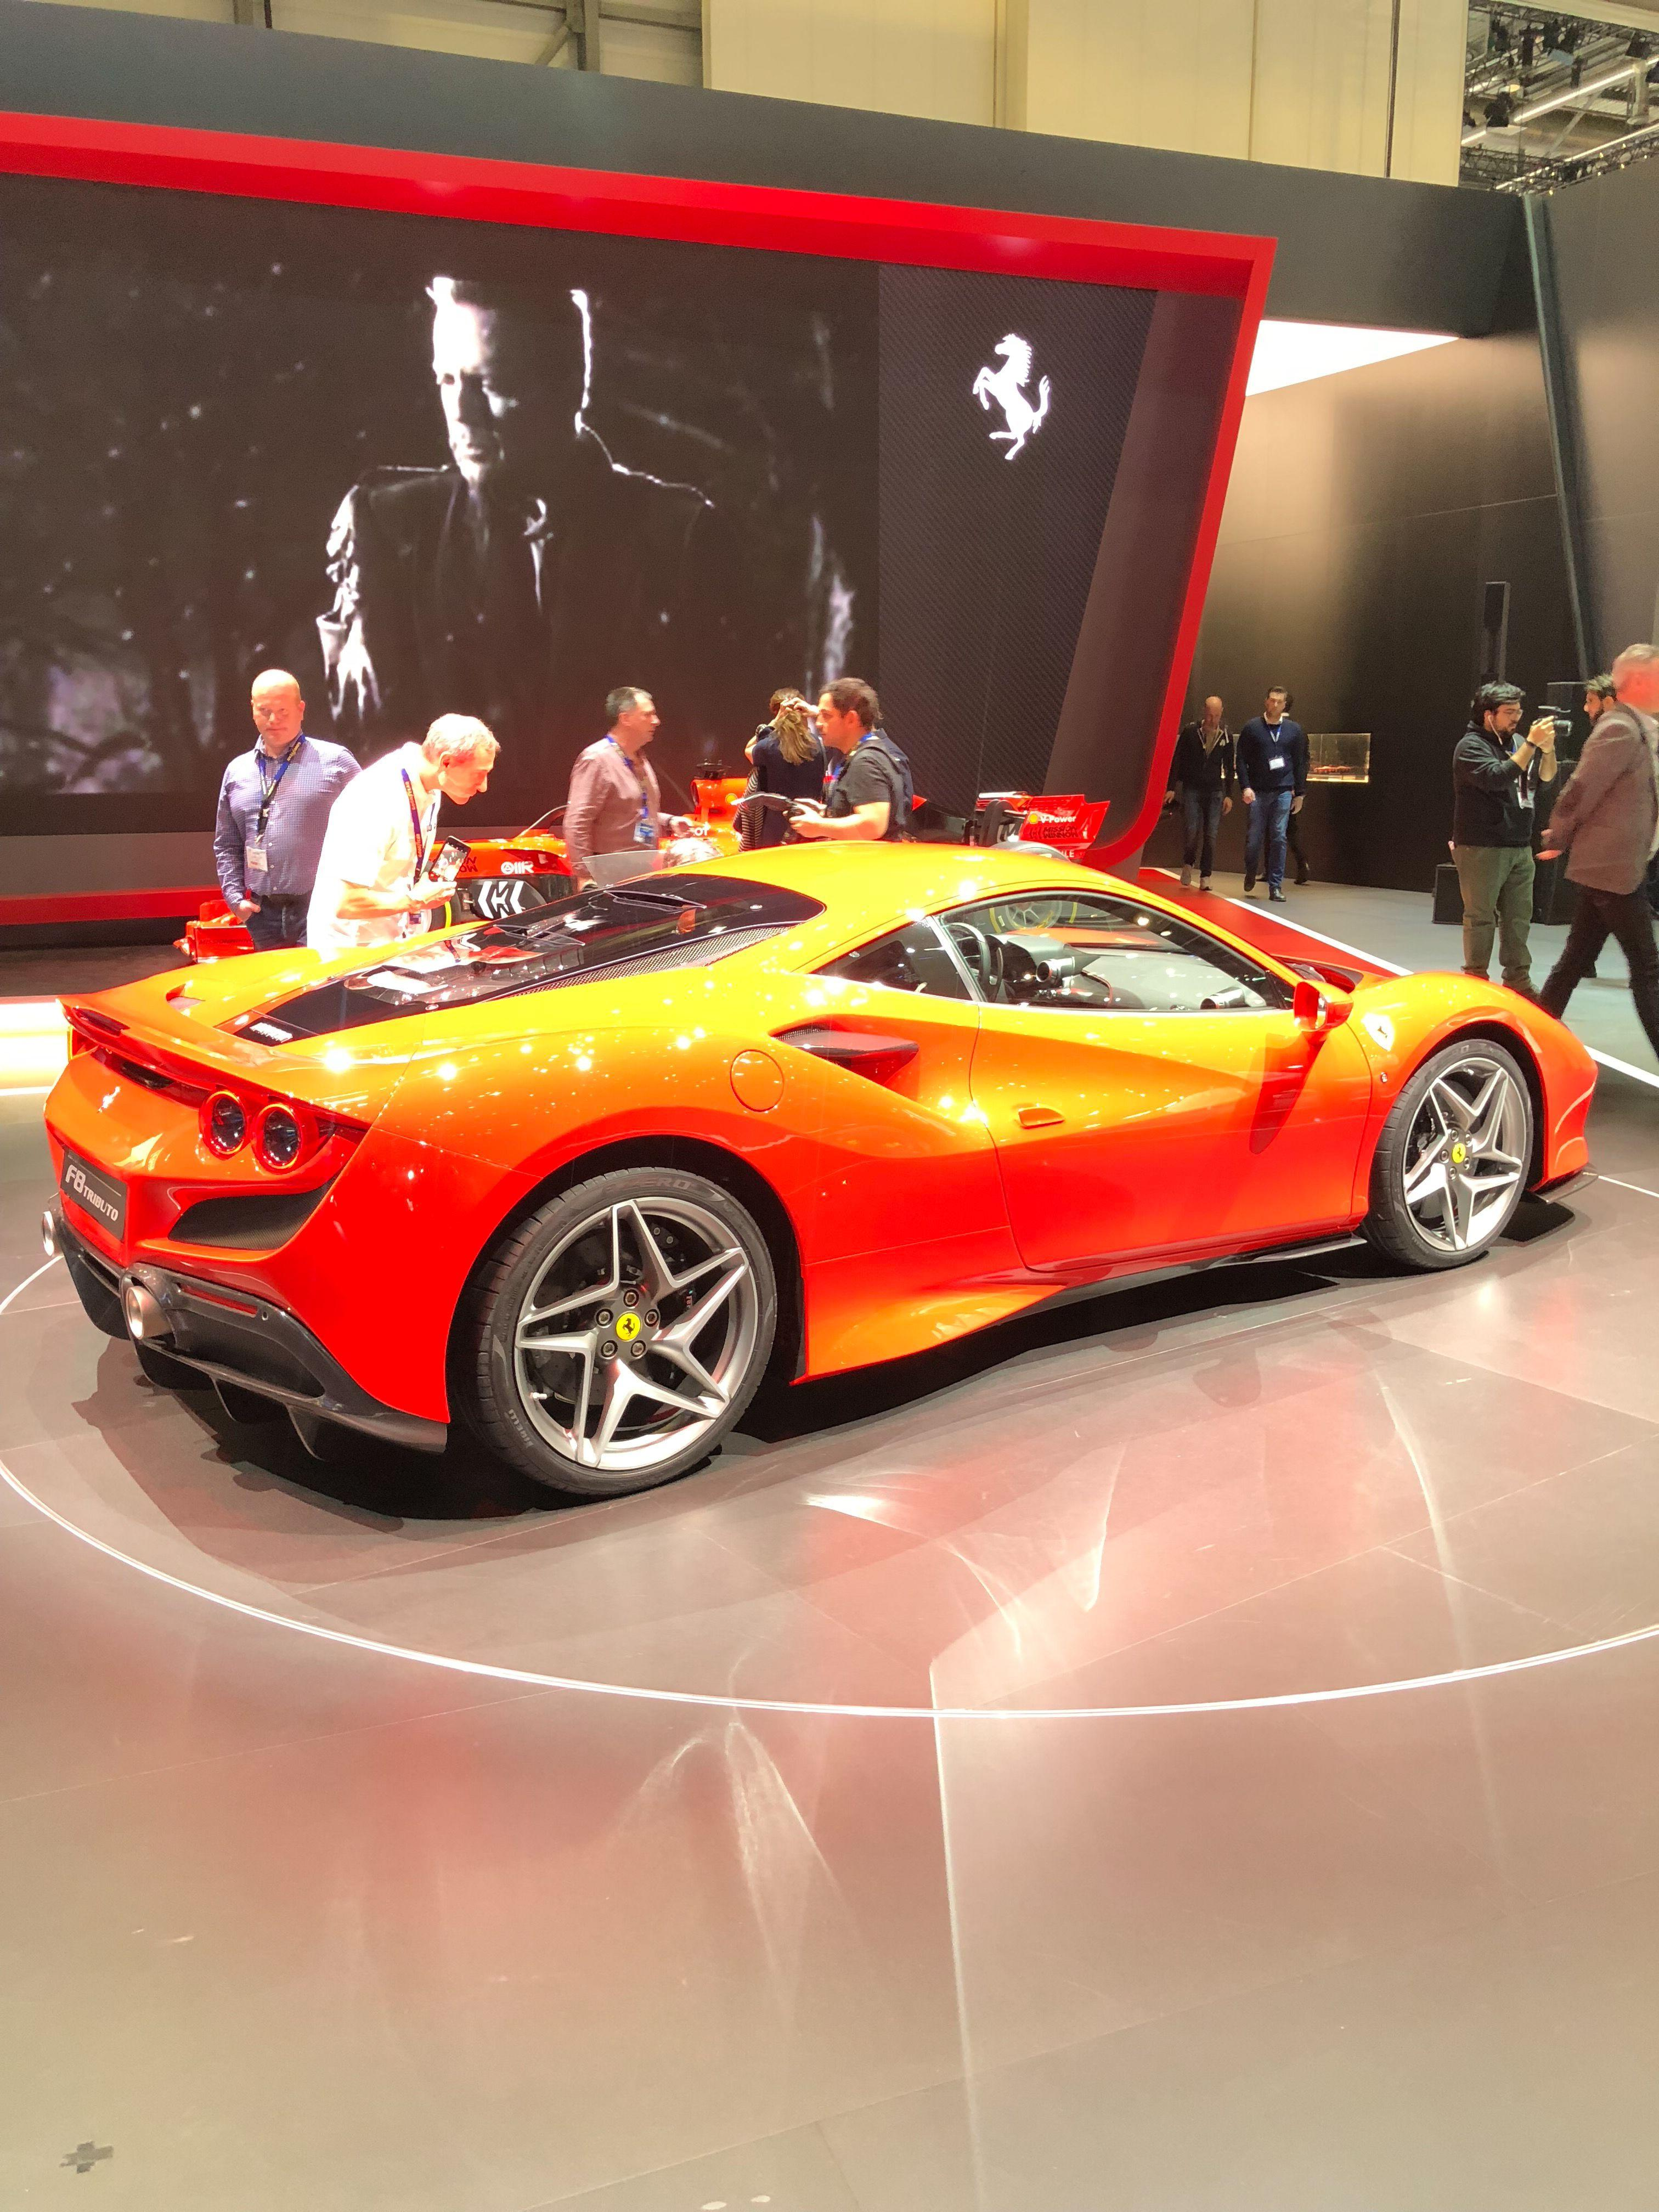 See The New 2020 Ferrari F8 Tributo In Pictures